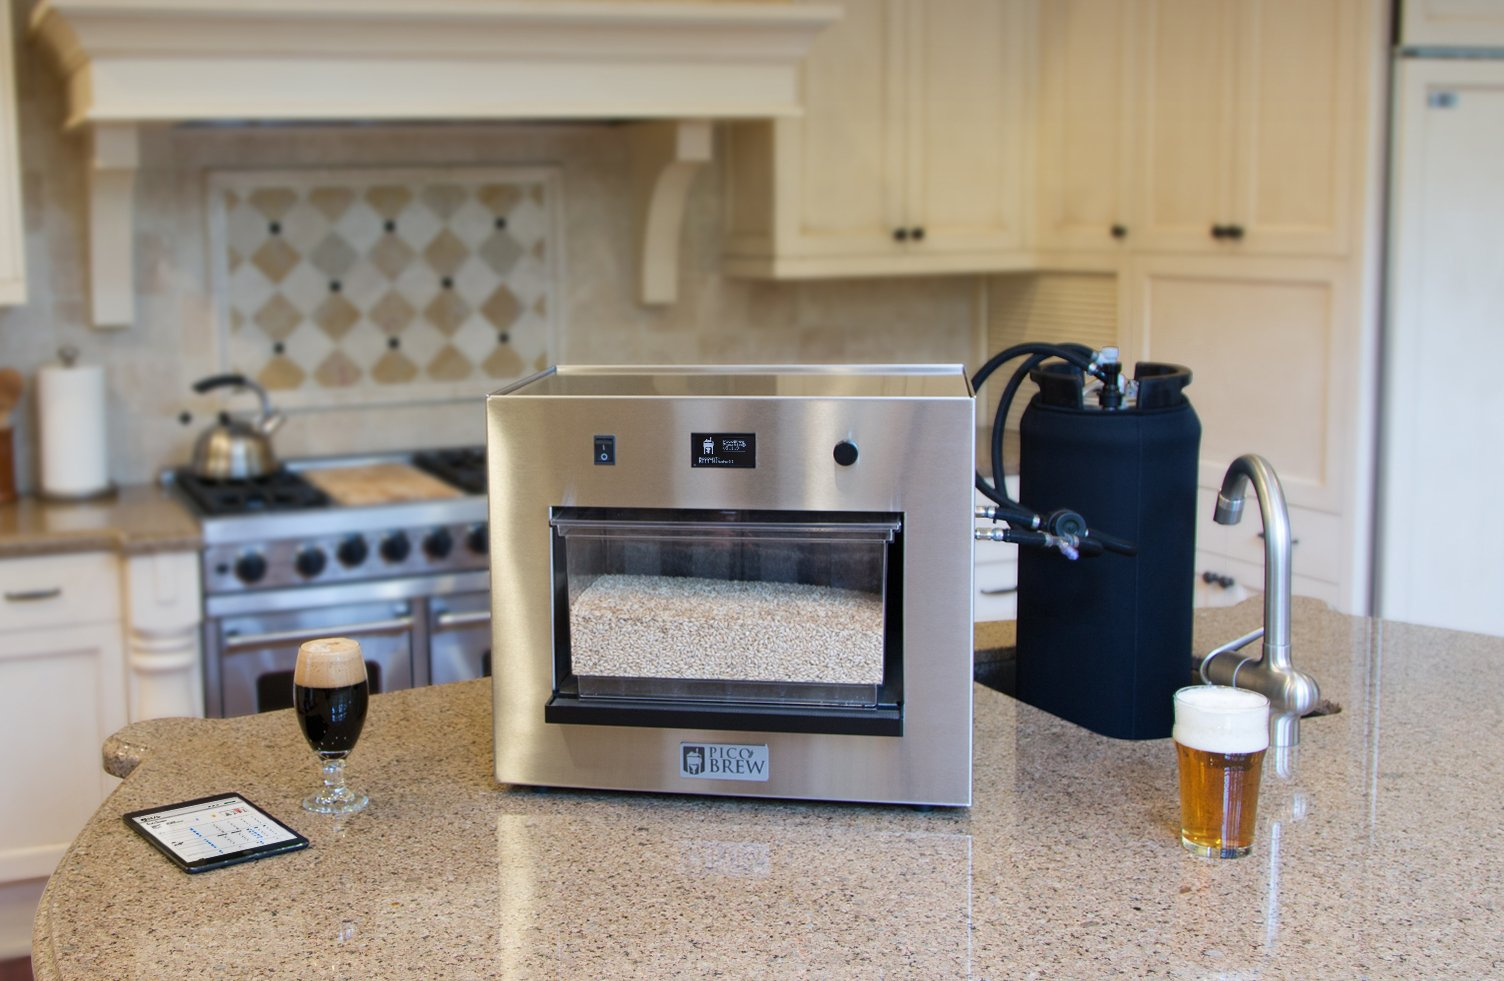 PicoBrew Zymatic - Automatic All-Grain Craft Beer Brewing Appliance For Your Brewery or Home Brewing - Brew From A Recipe Library with Thousands of Proven Beers or Make Your Own by PicoBrew